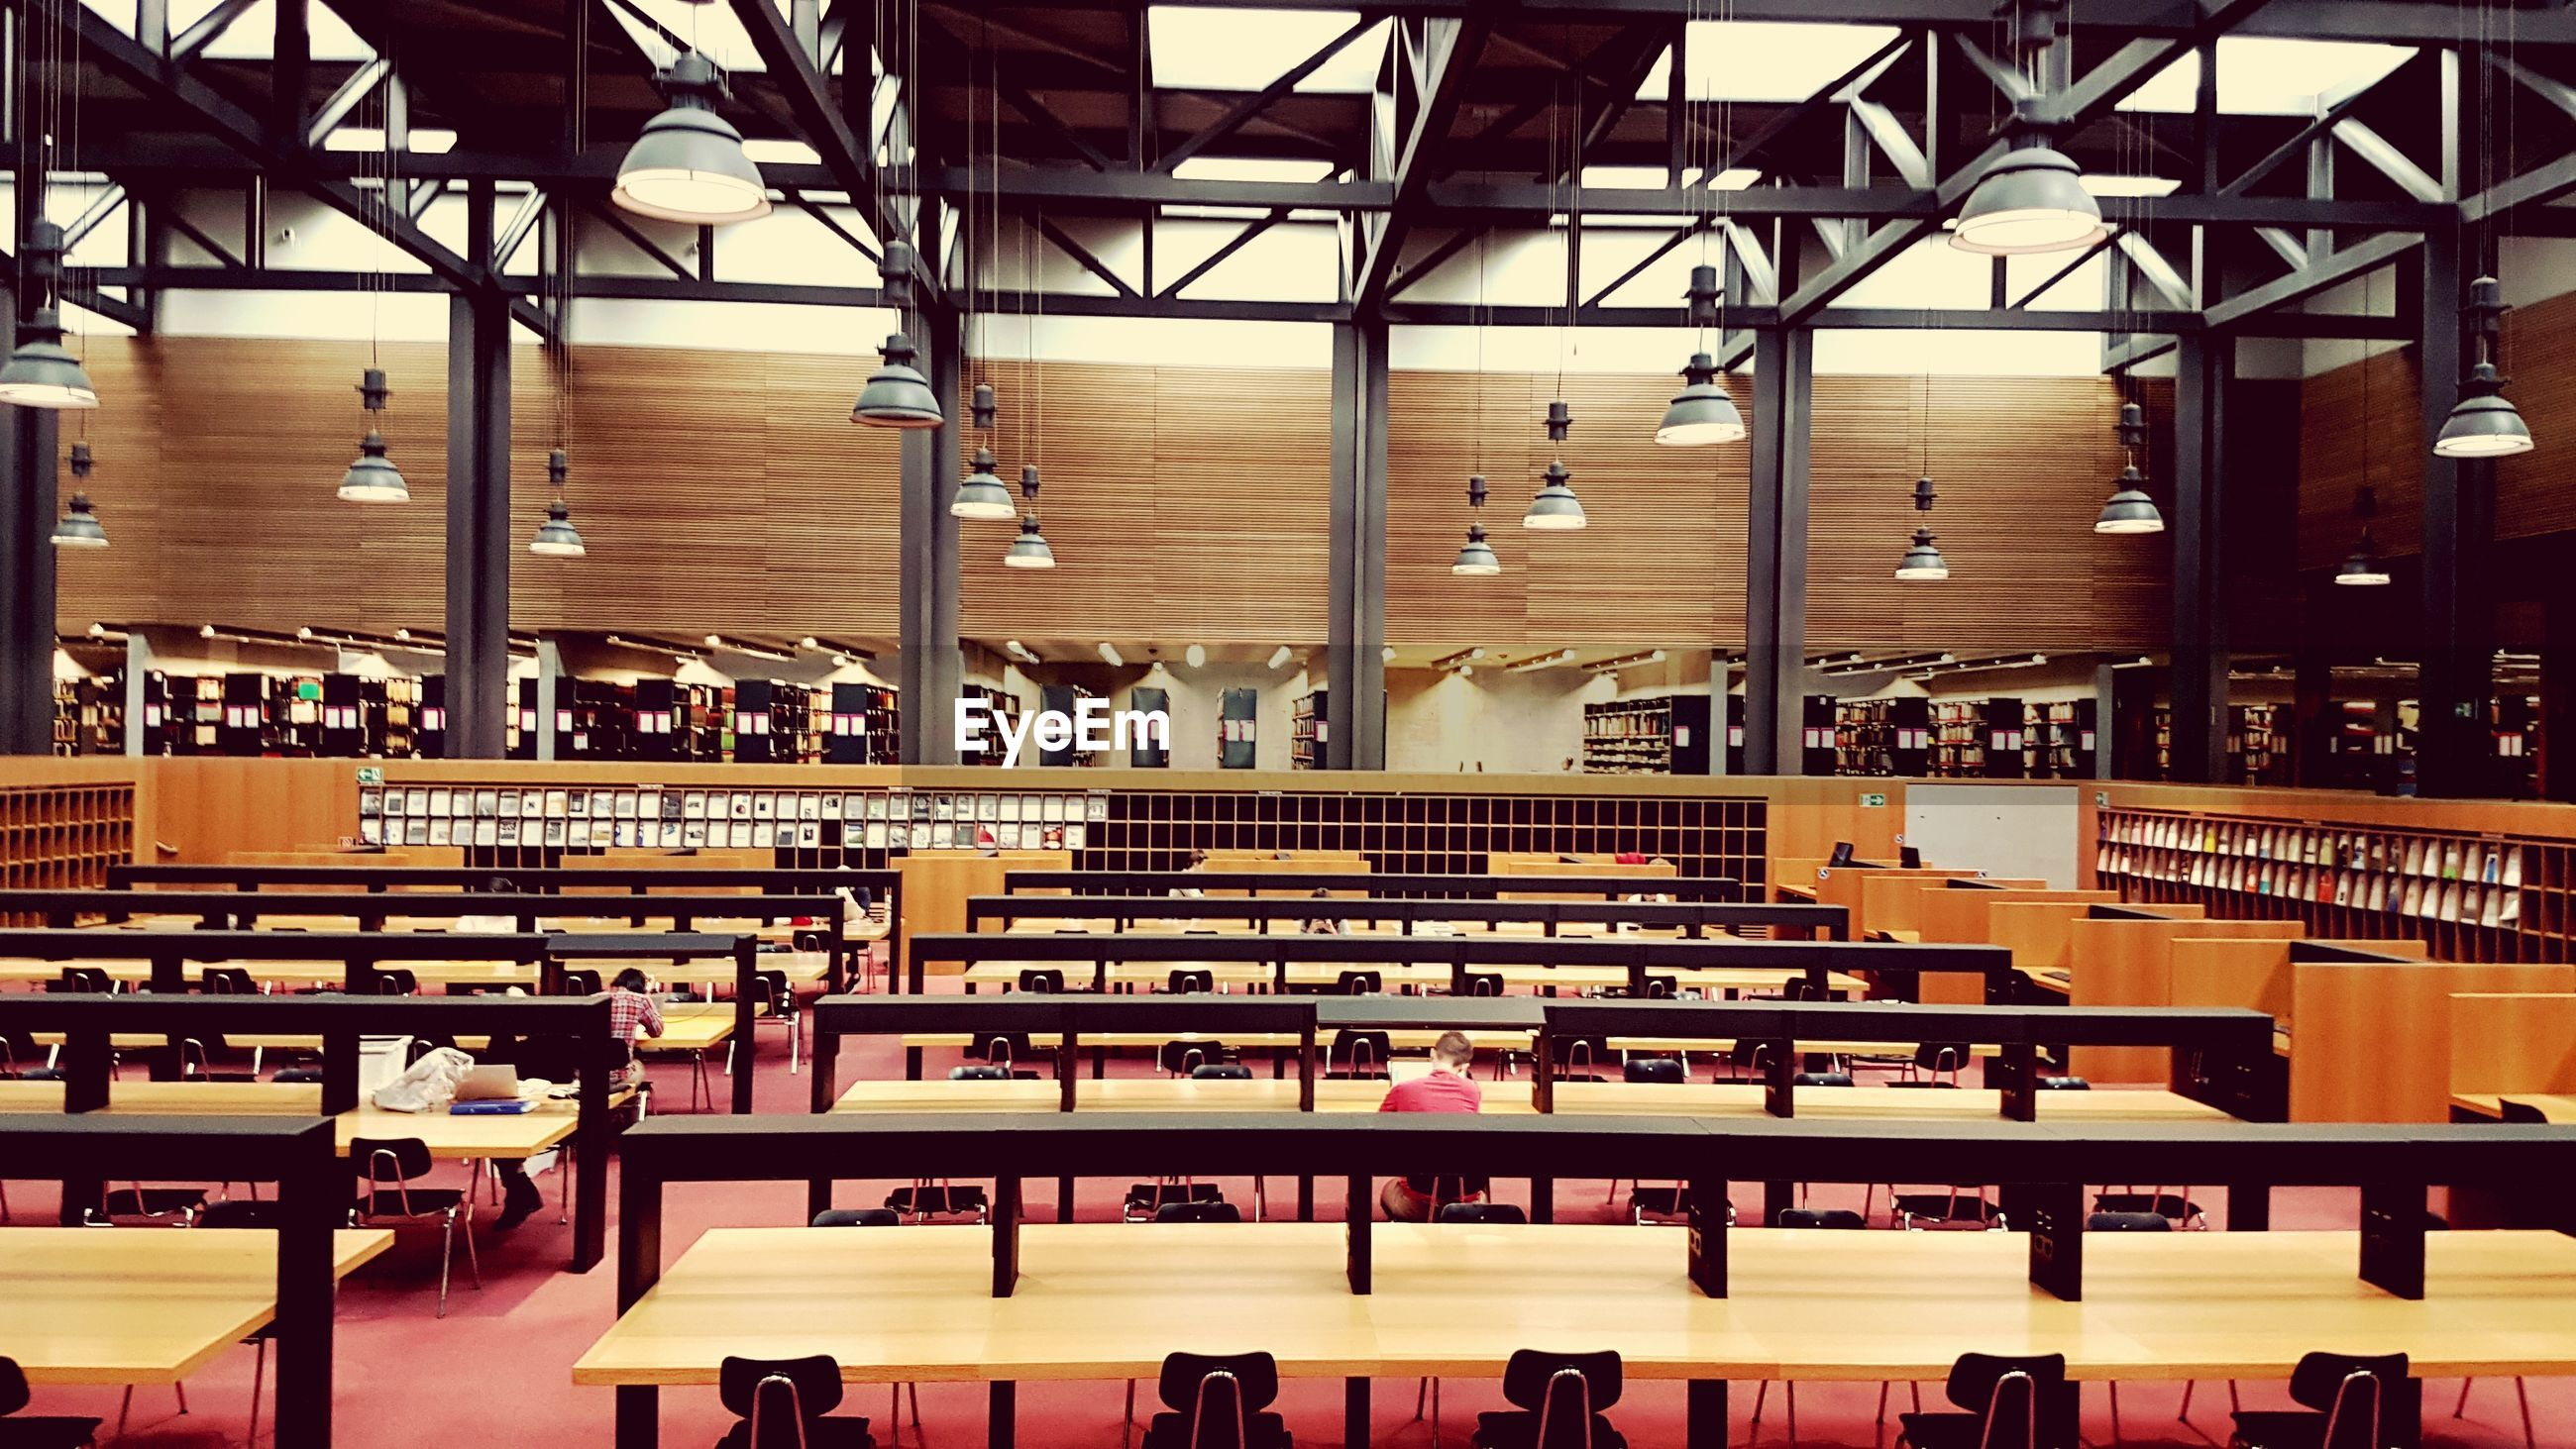 indoors, education, in a row, university, chair, real people, technology, seminar, architecture, seat, student, day